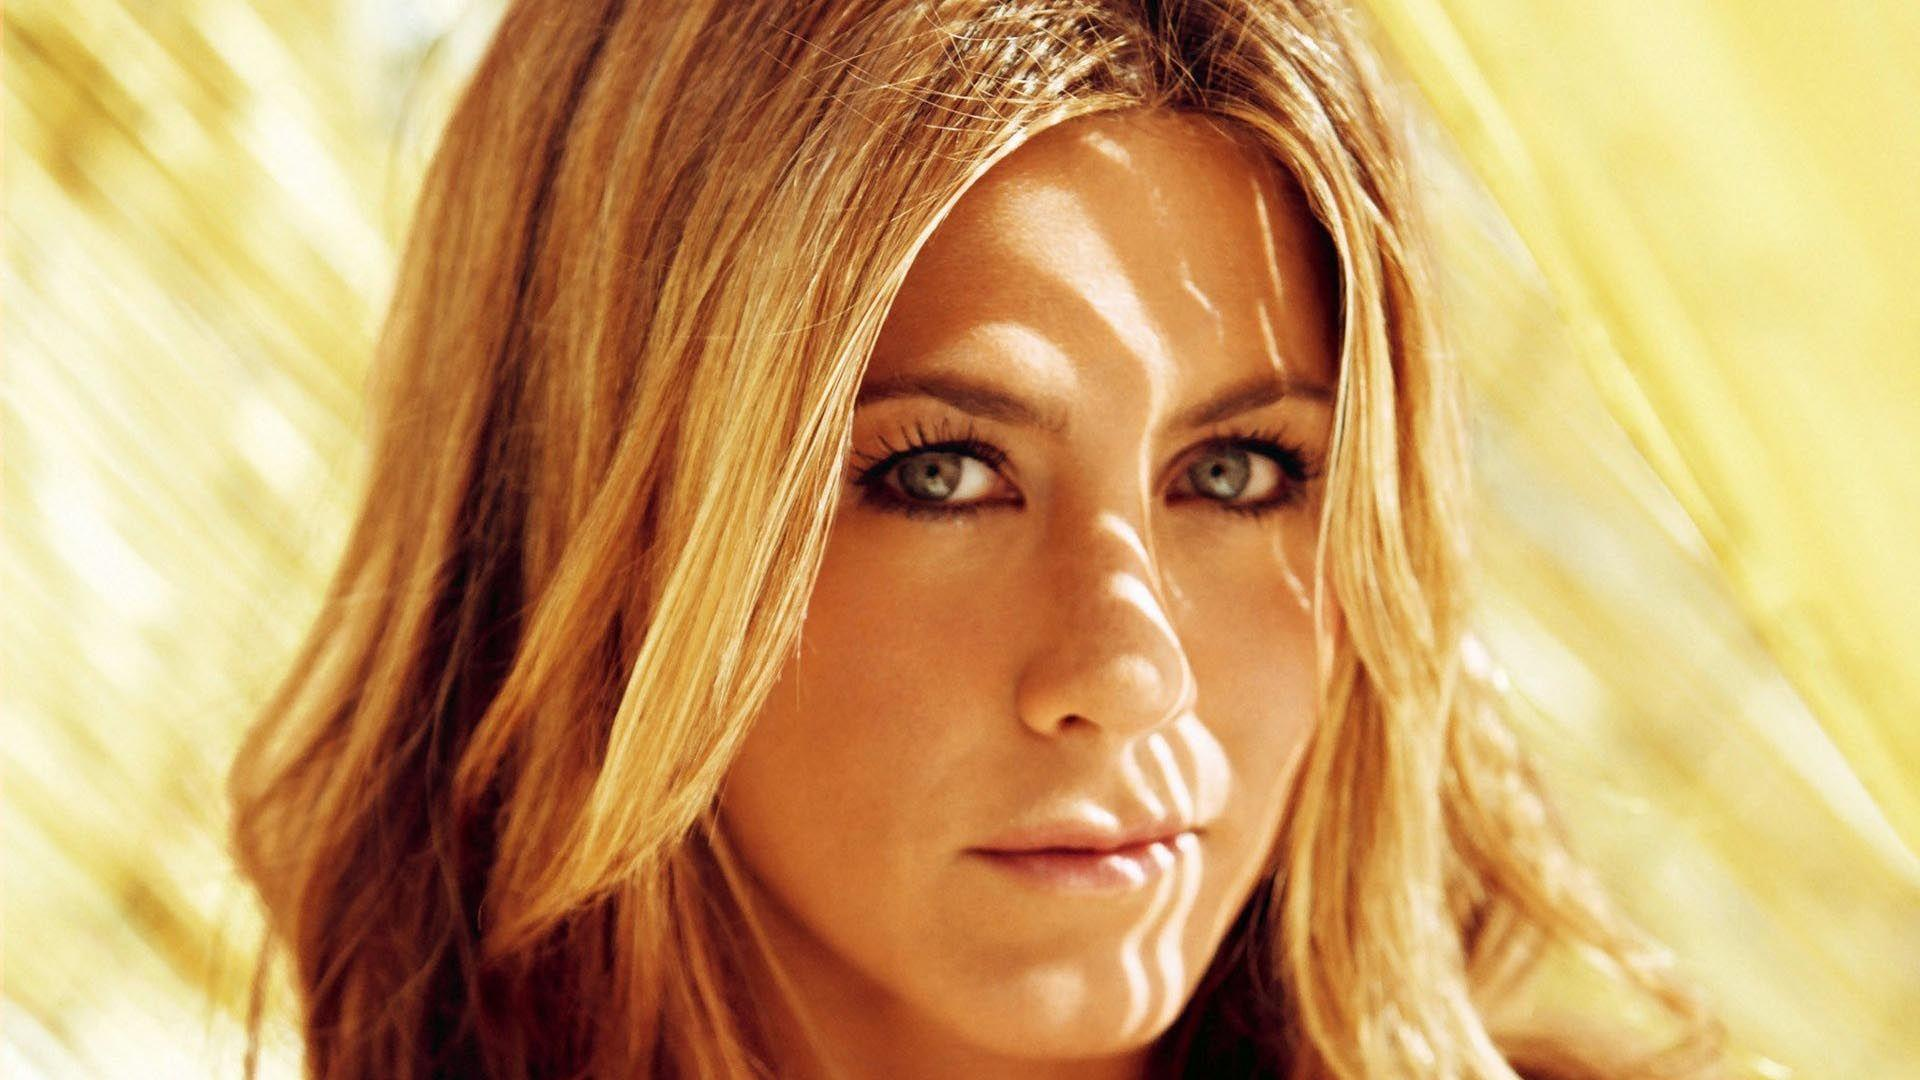 Jennifer Aniston Wallpapers | Full HD Pictures